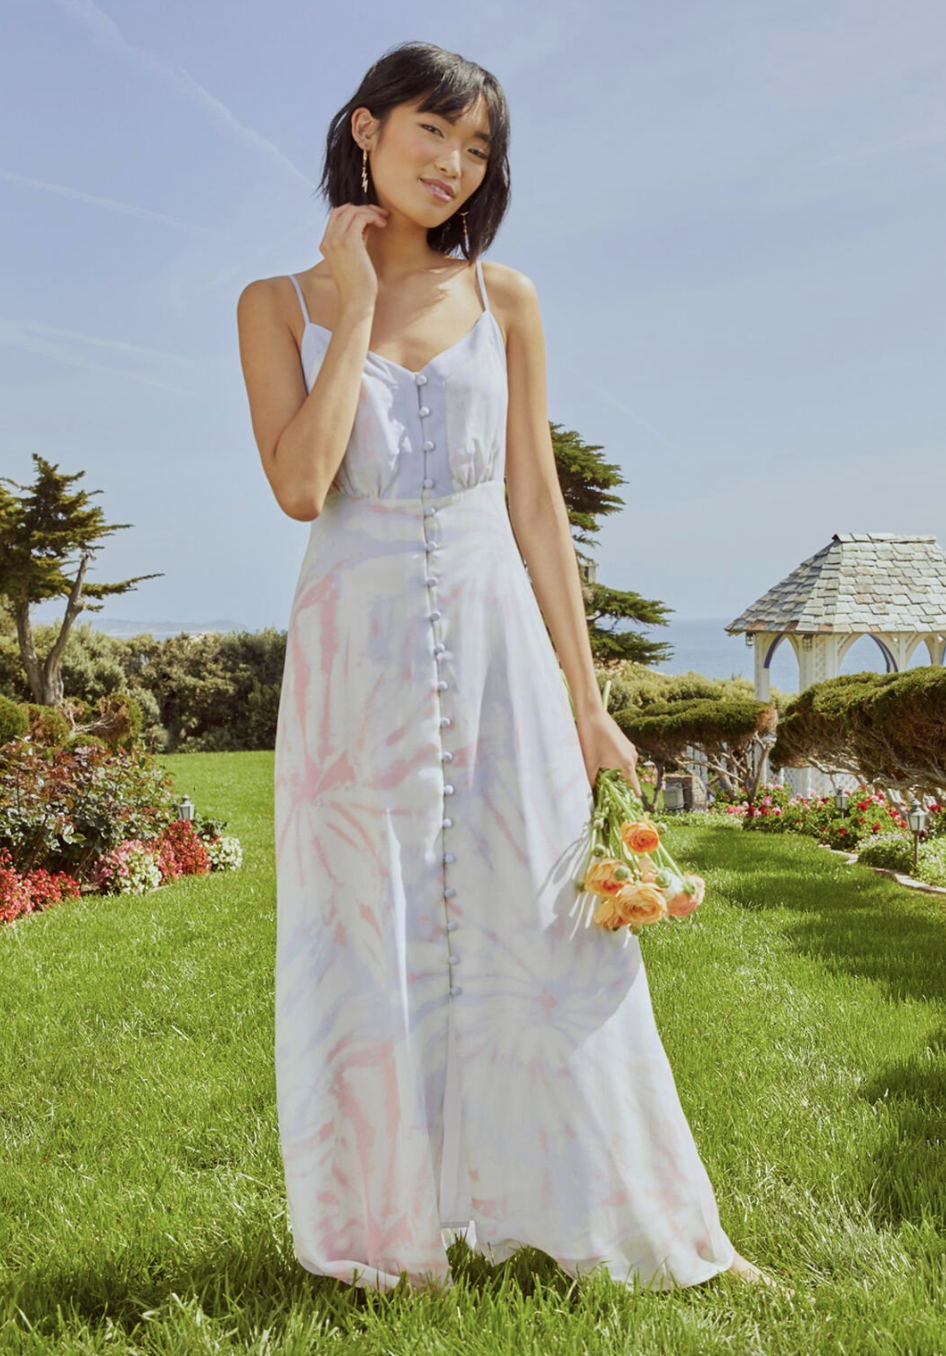 A model in a button up strapped tie-dye maxi dress